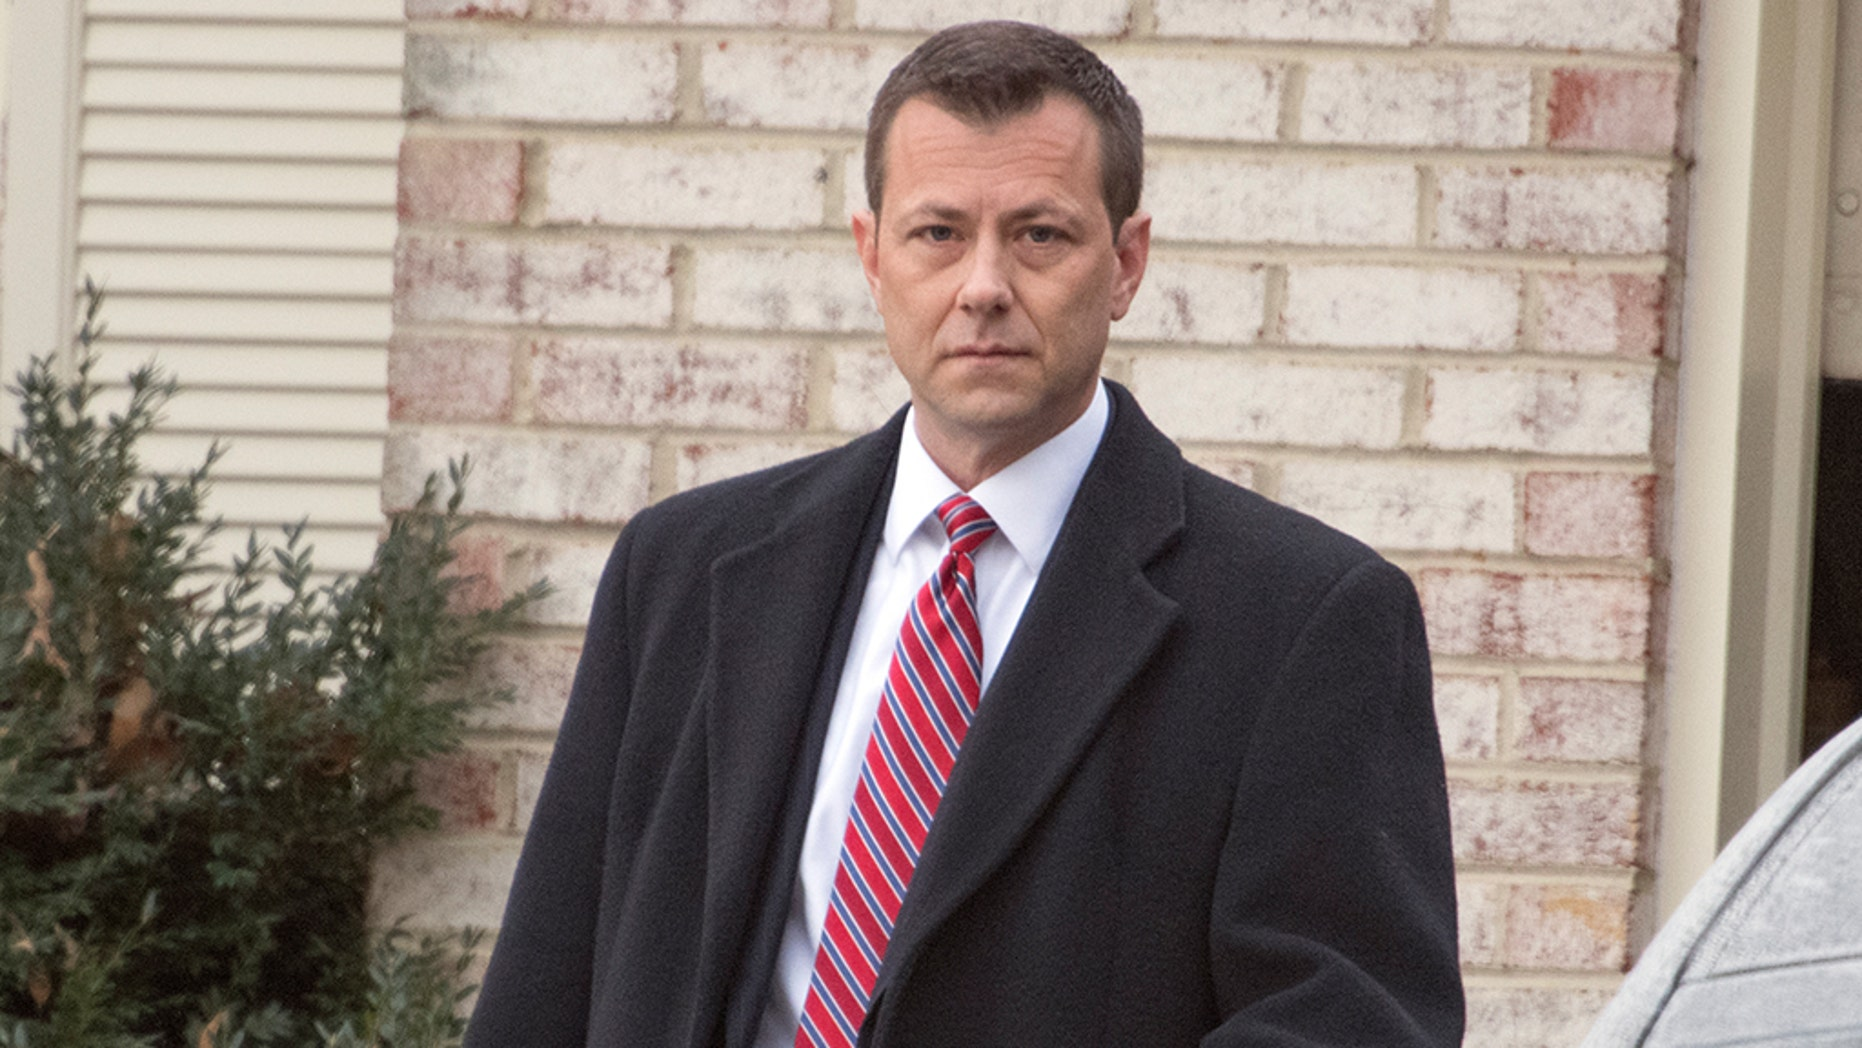 FBI Agent Peter Strzok, who exchanged 375 text messages with Department of Justice attorney Lisa Page that led to his removal from special counsel Robert Mueller's probe into ties between the Trump campaign and the Kremlin's efforts to interfere in the U.S. election last summer, photographed outside his home in Fairfax, Virginia on Wednesday, January 3, 2018. Credit: Ron Sachs / CNP (RESTRICTION: NO New York or New Jersey Newspapers or newspapers within a 75 mile radius of any part of New York, New York, including without limitation the New York Daily News, The New York Times, and Newsday.) Photo by: Ron Sachs/picture-alliance/dpa/AP Images